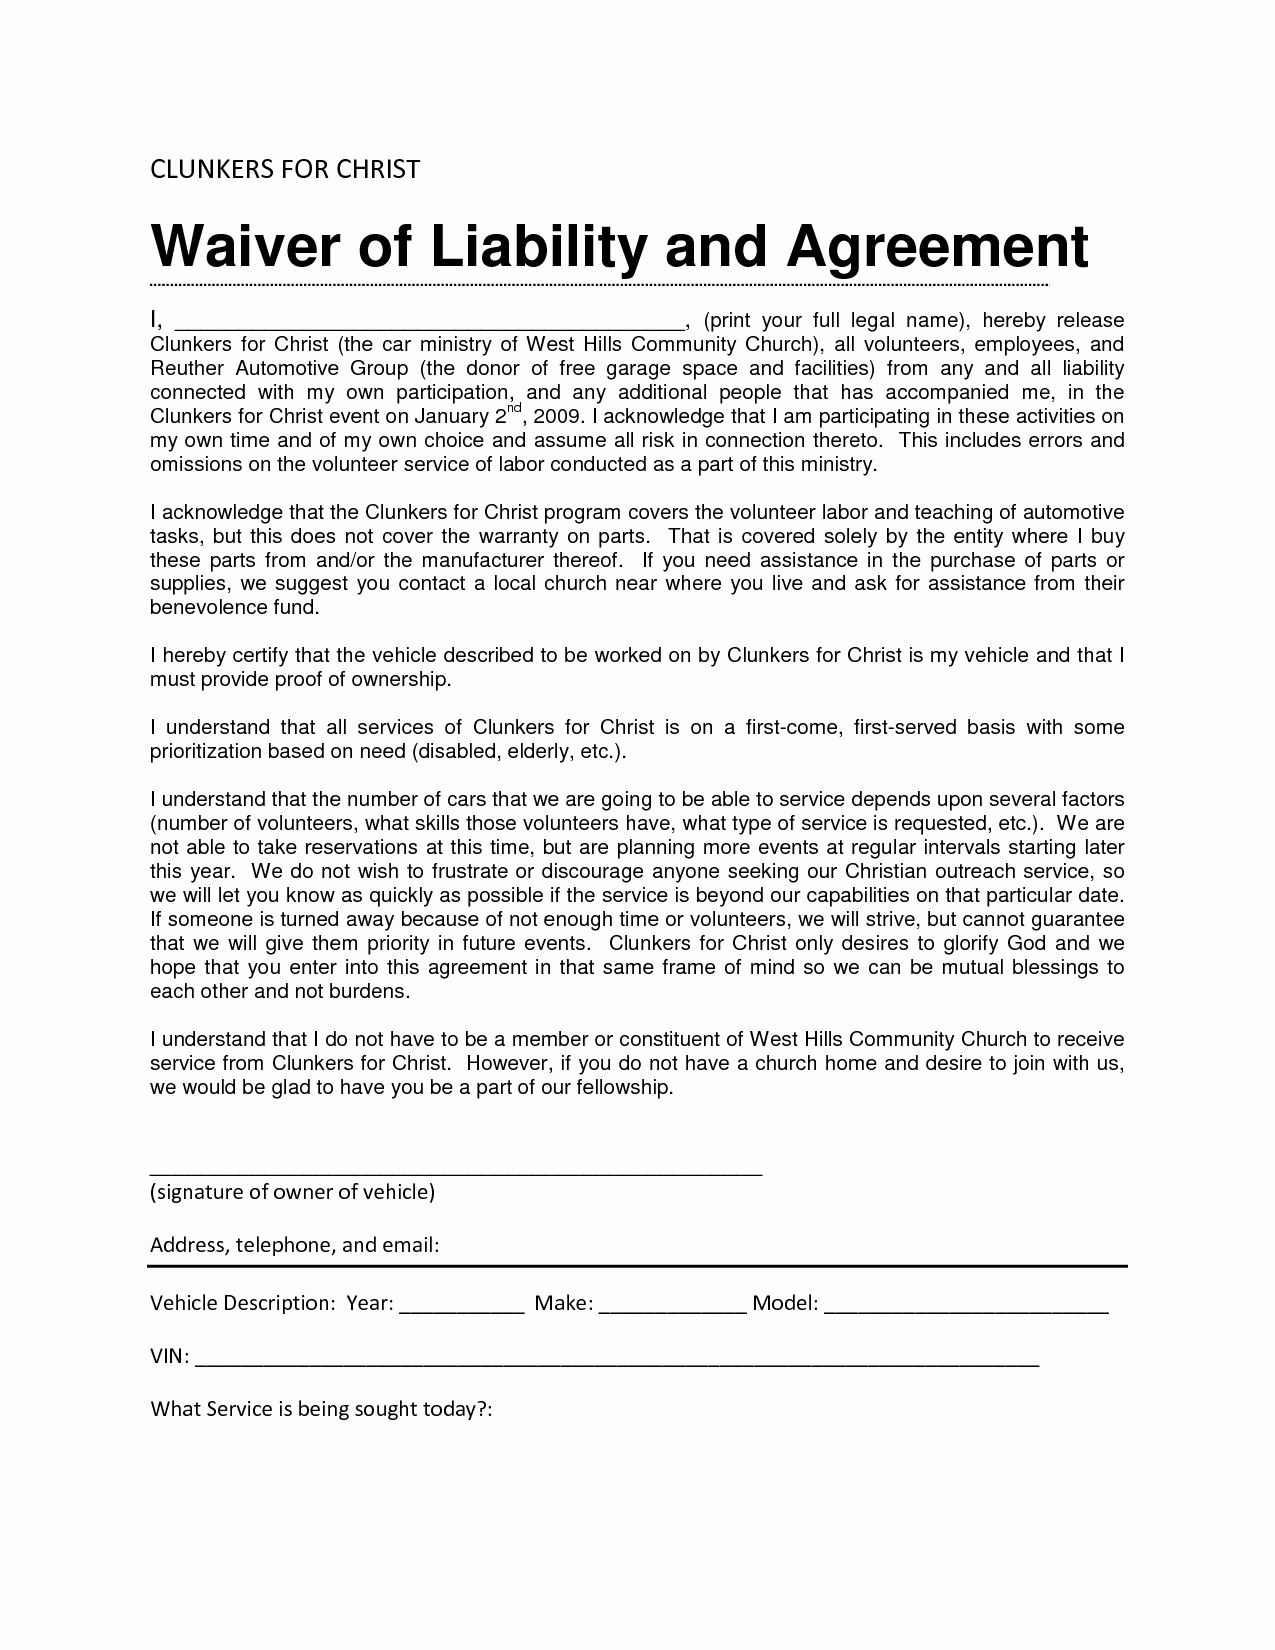 Liability Waiver form Template Free Lovely Liability Waiver Sample Bamboodownunder